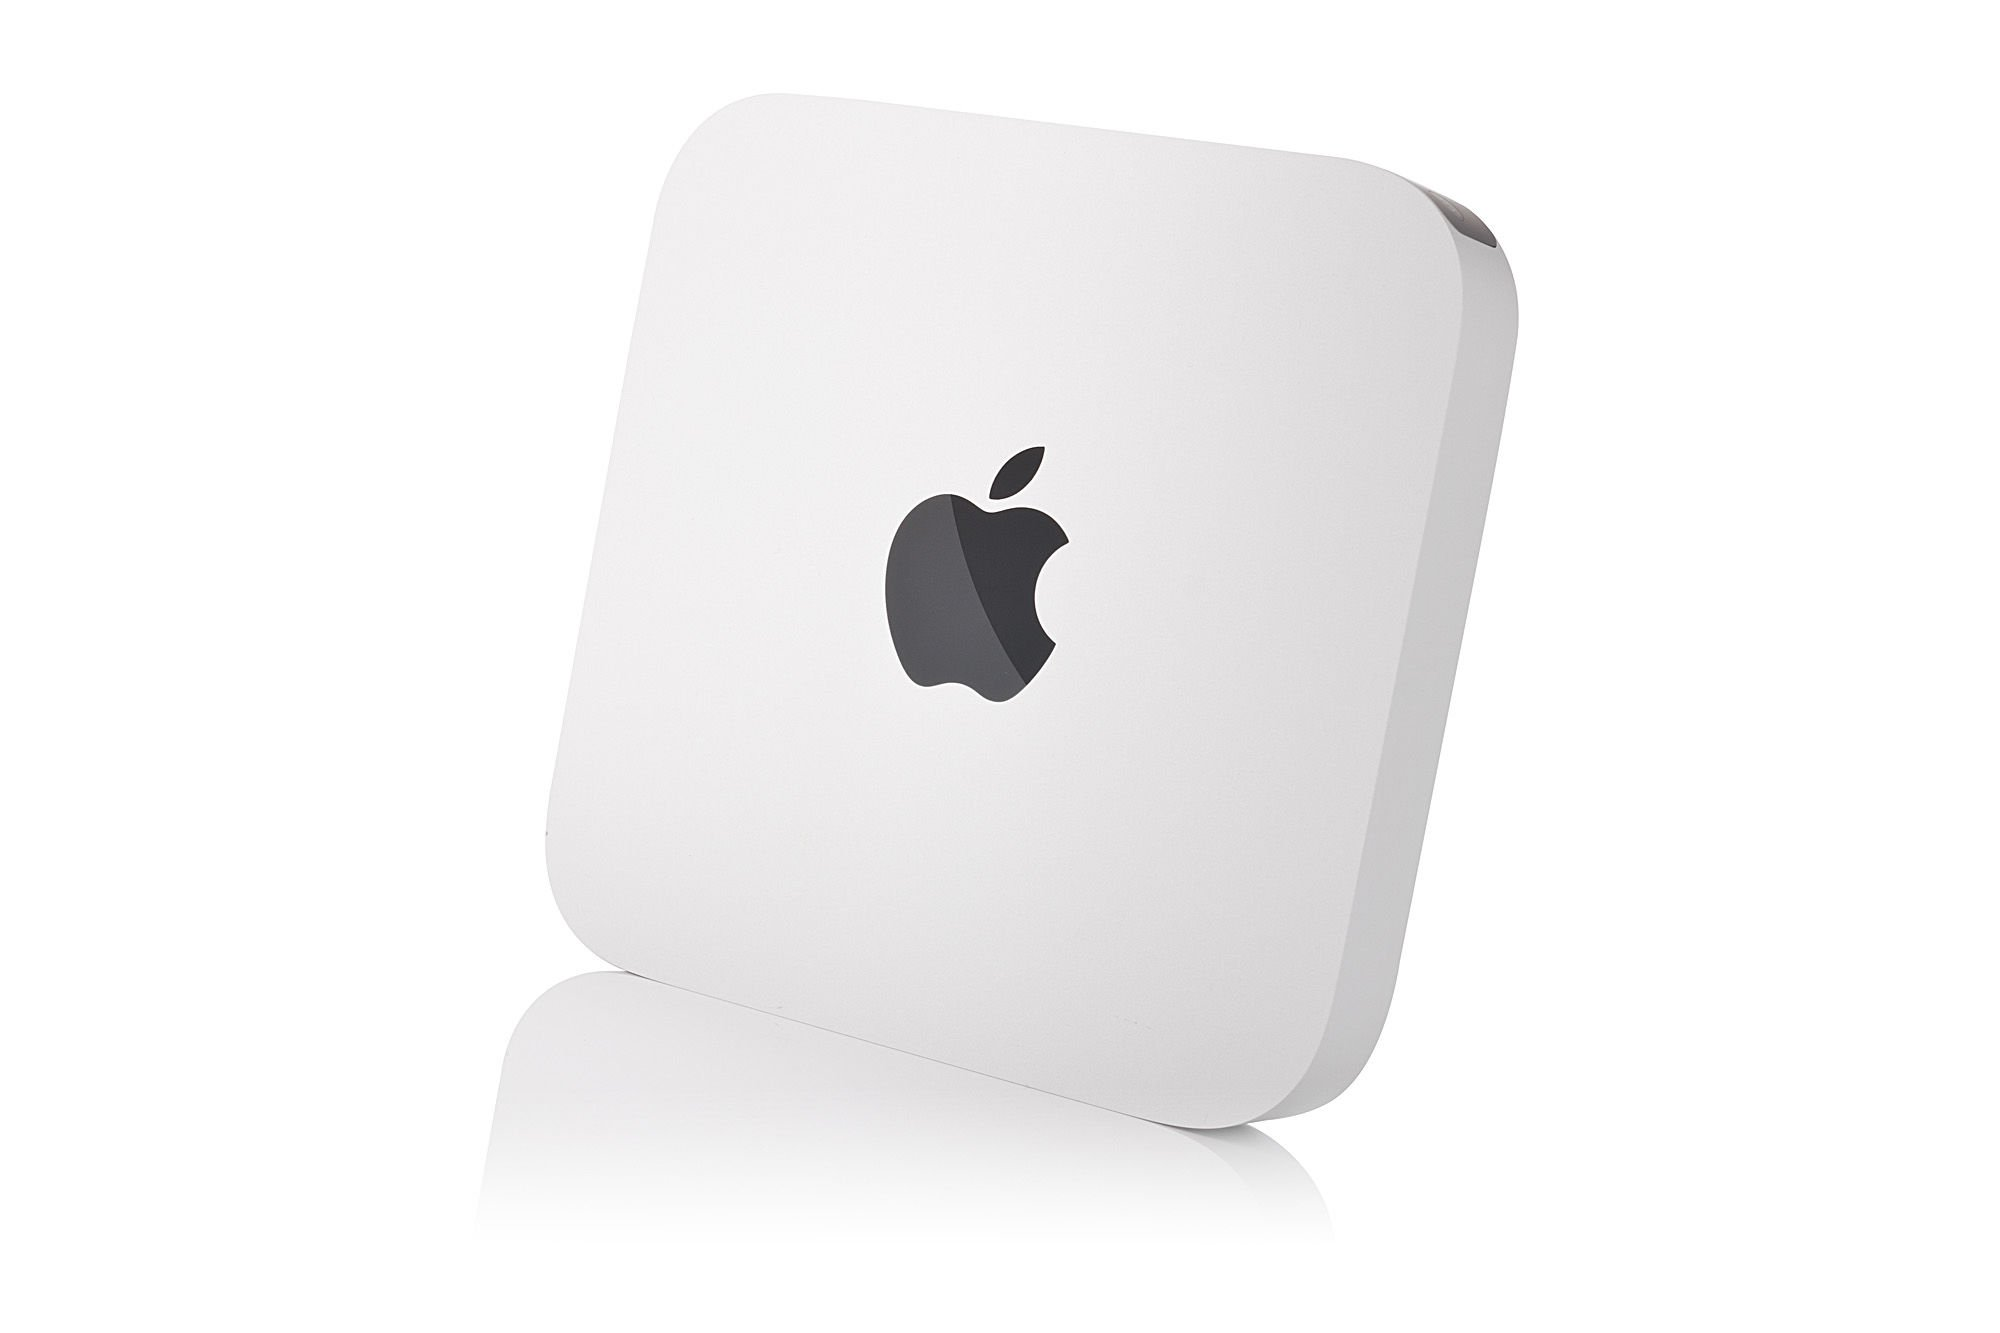 Best desktop Mac 2017/2018: Mac mini